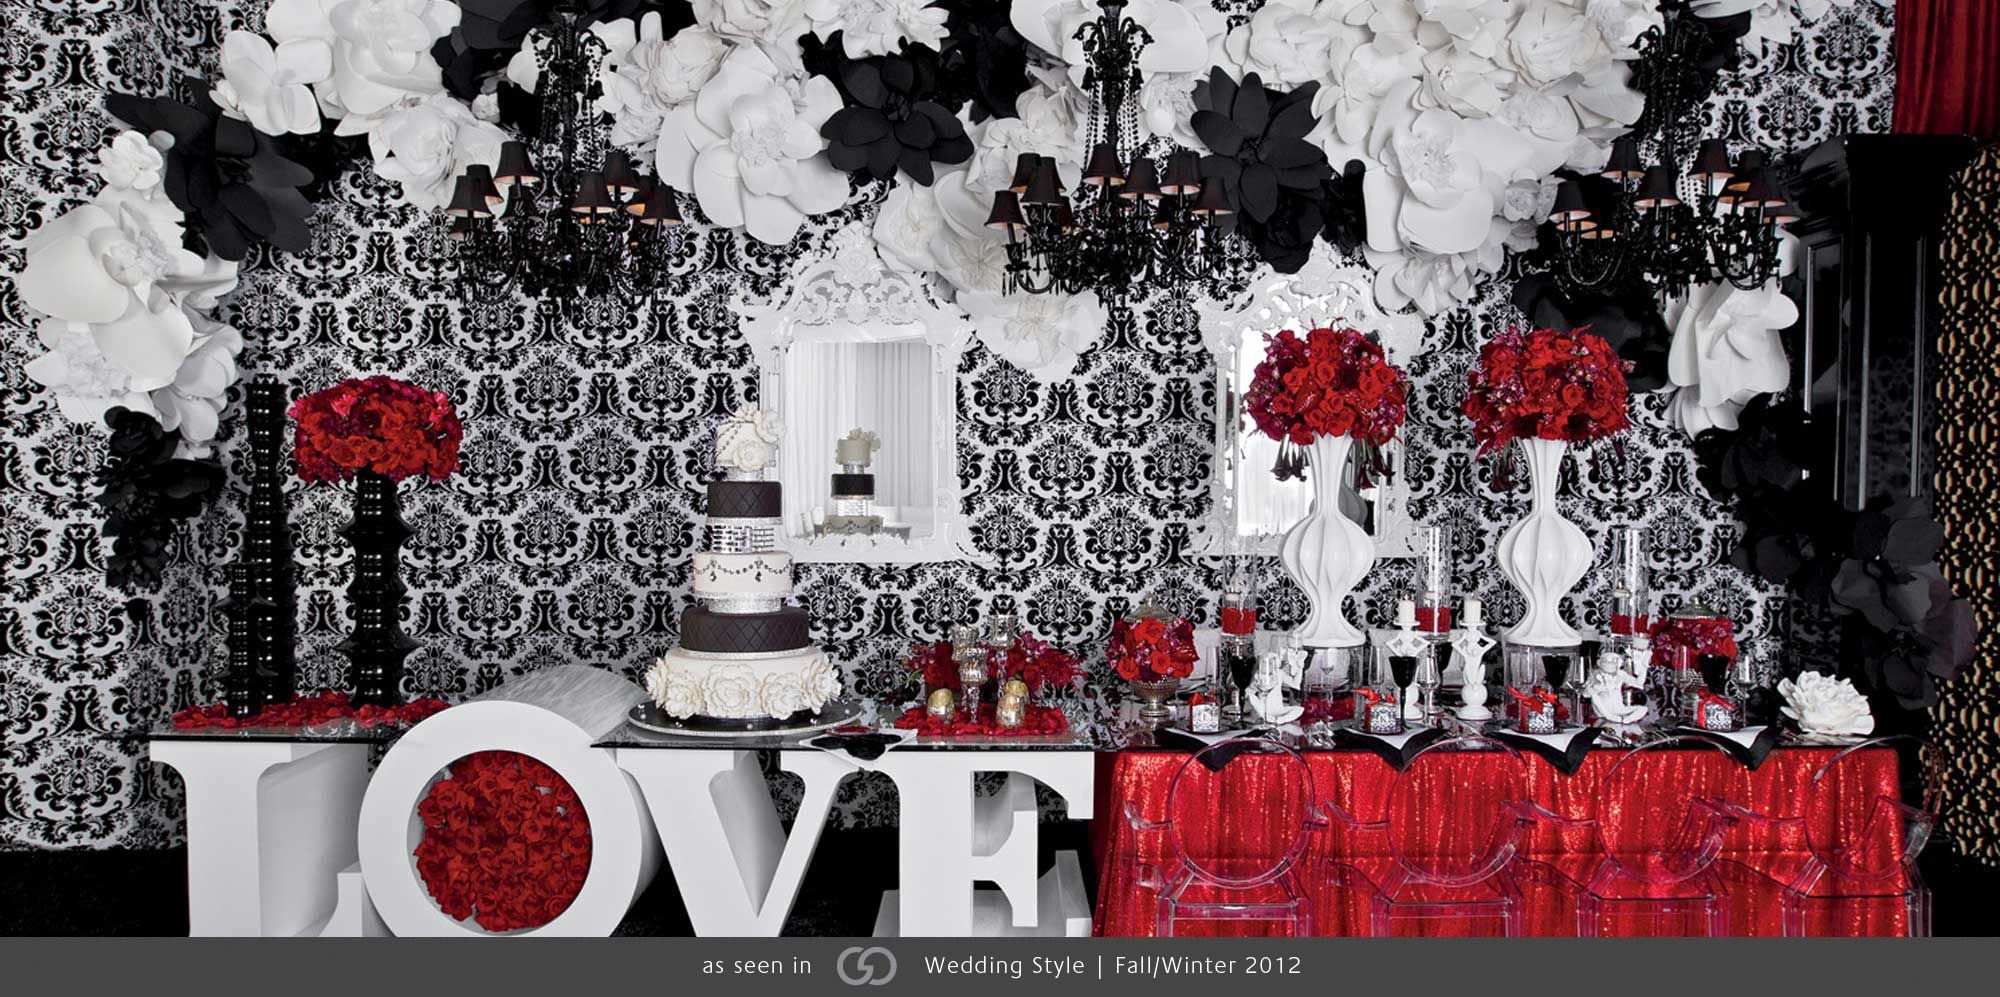 Black And White Wedding Reception Trends Ideas 2013 Lounge Rrivre Works Seen On Fullcircleevent